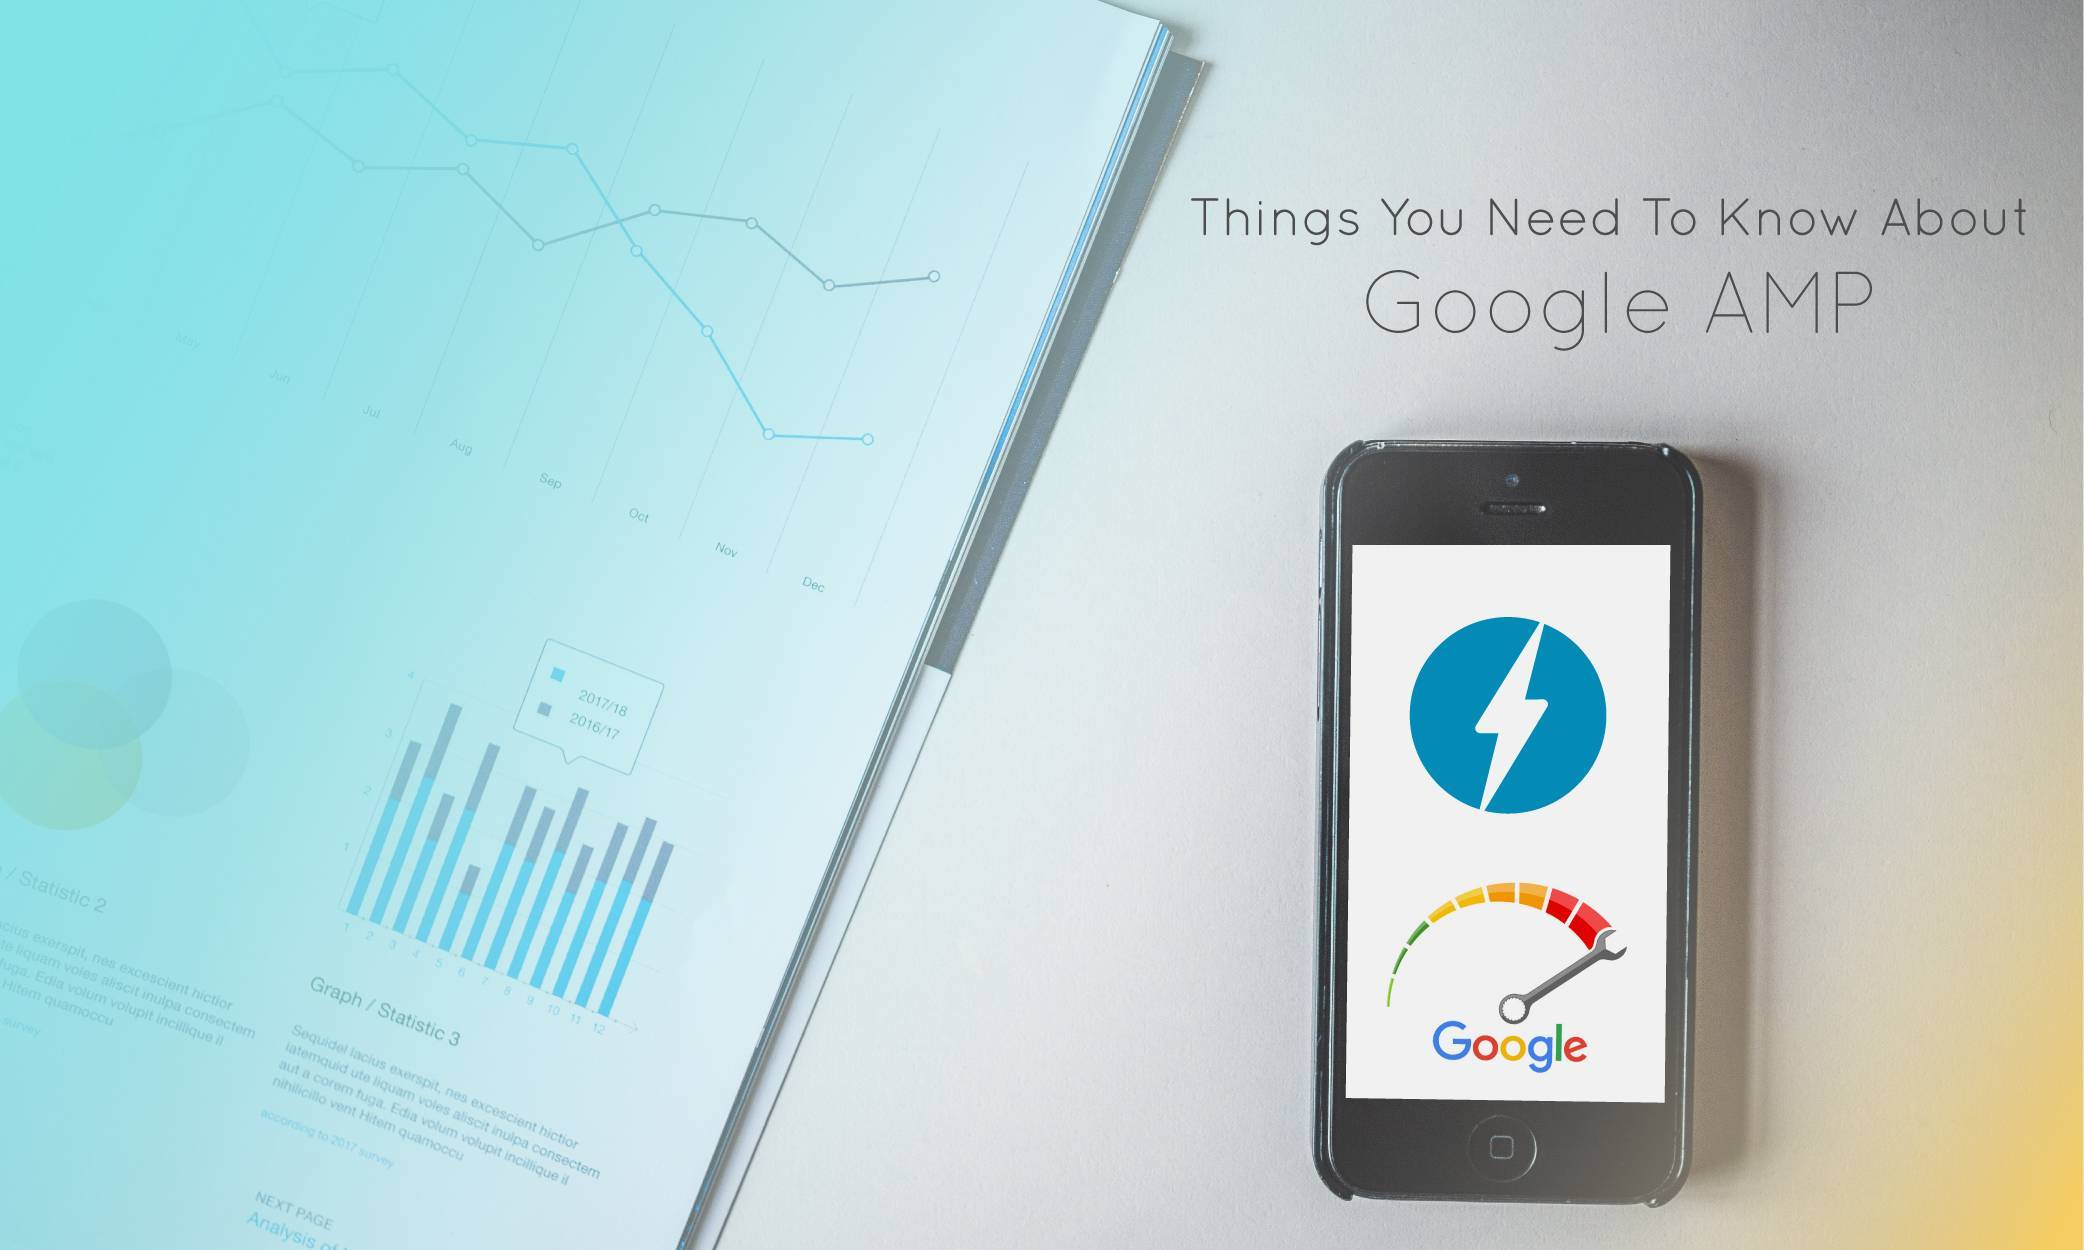 6 Things You Need To Know About Google AMP